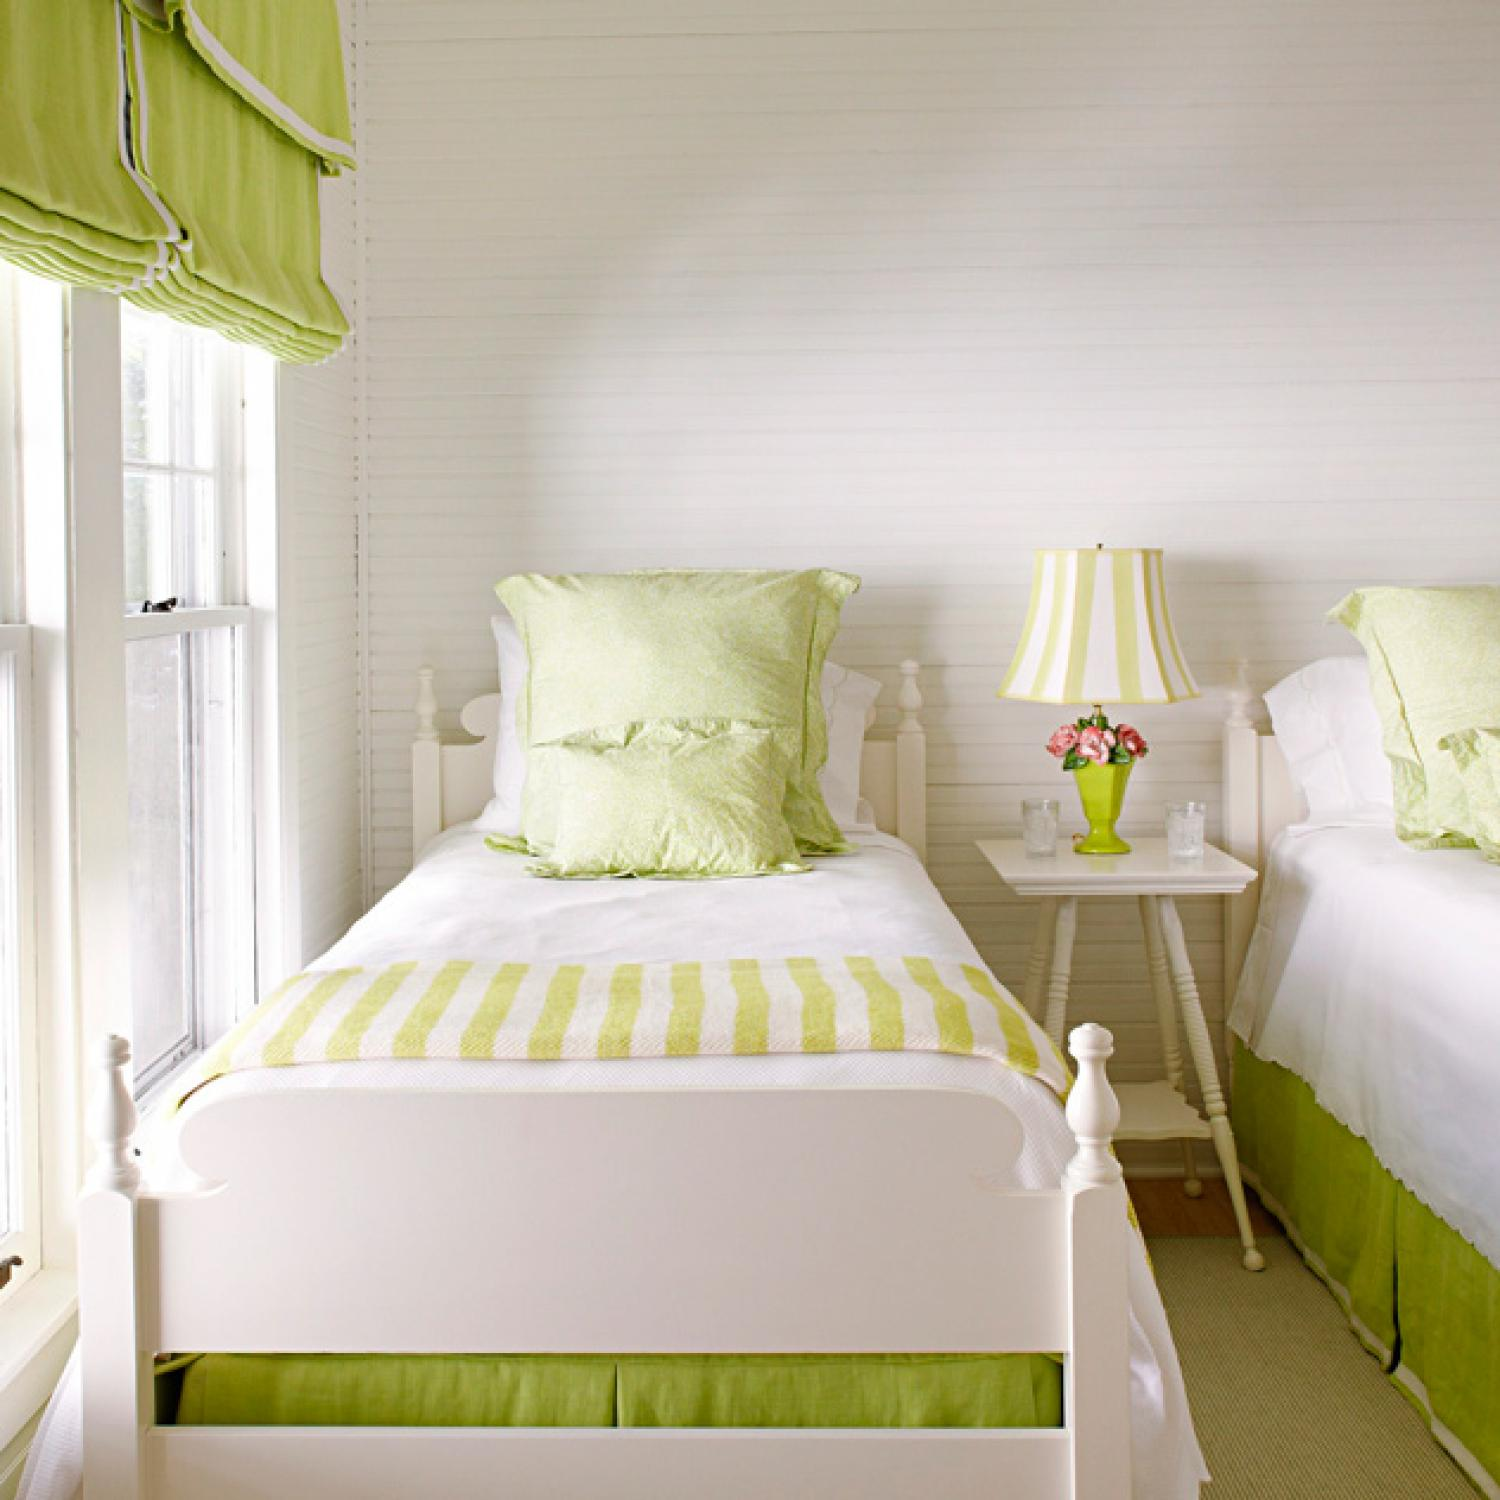 42+ Small Bedroom Decor Ideas 2014